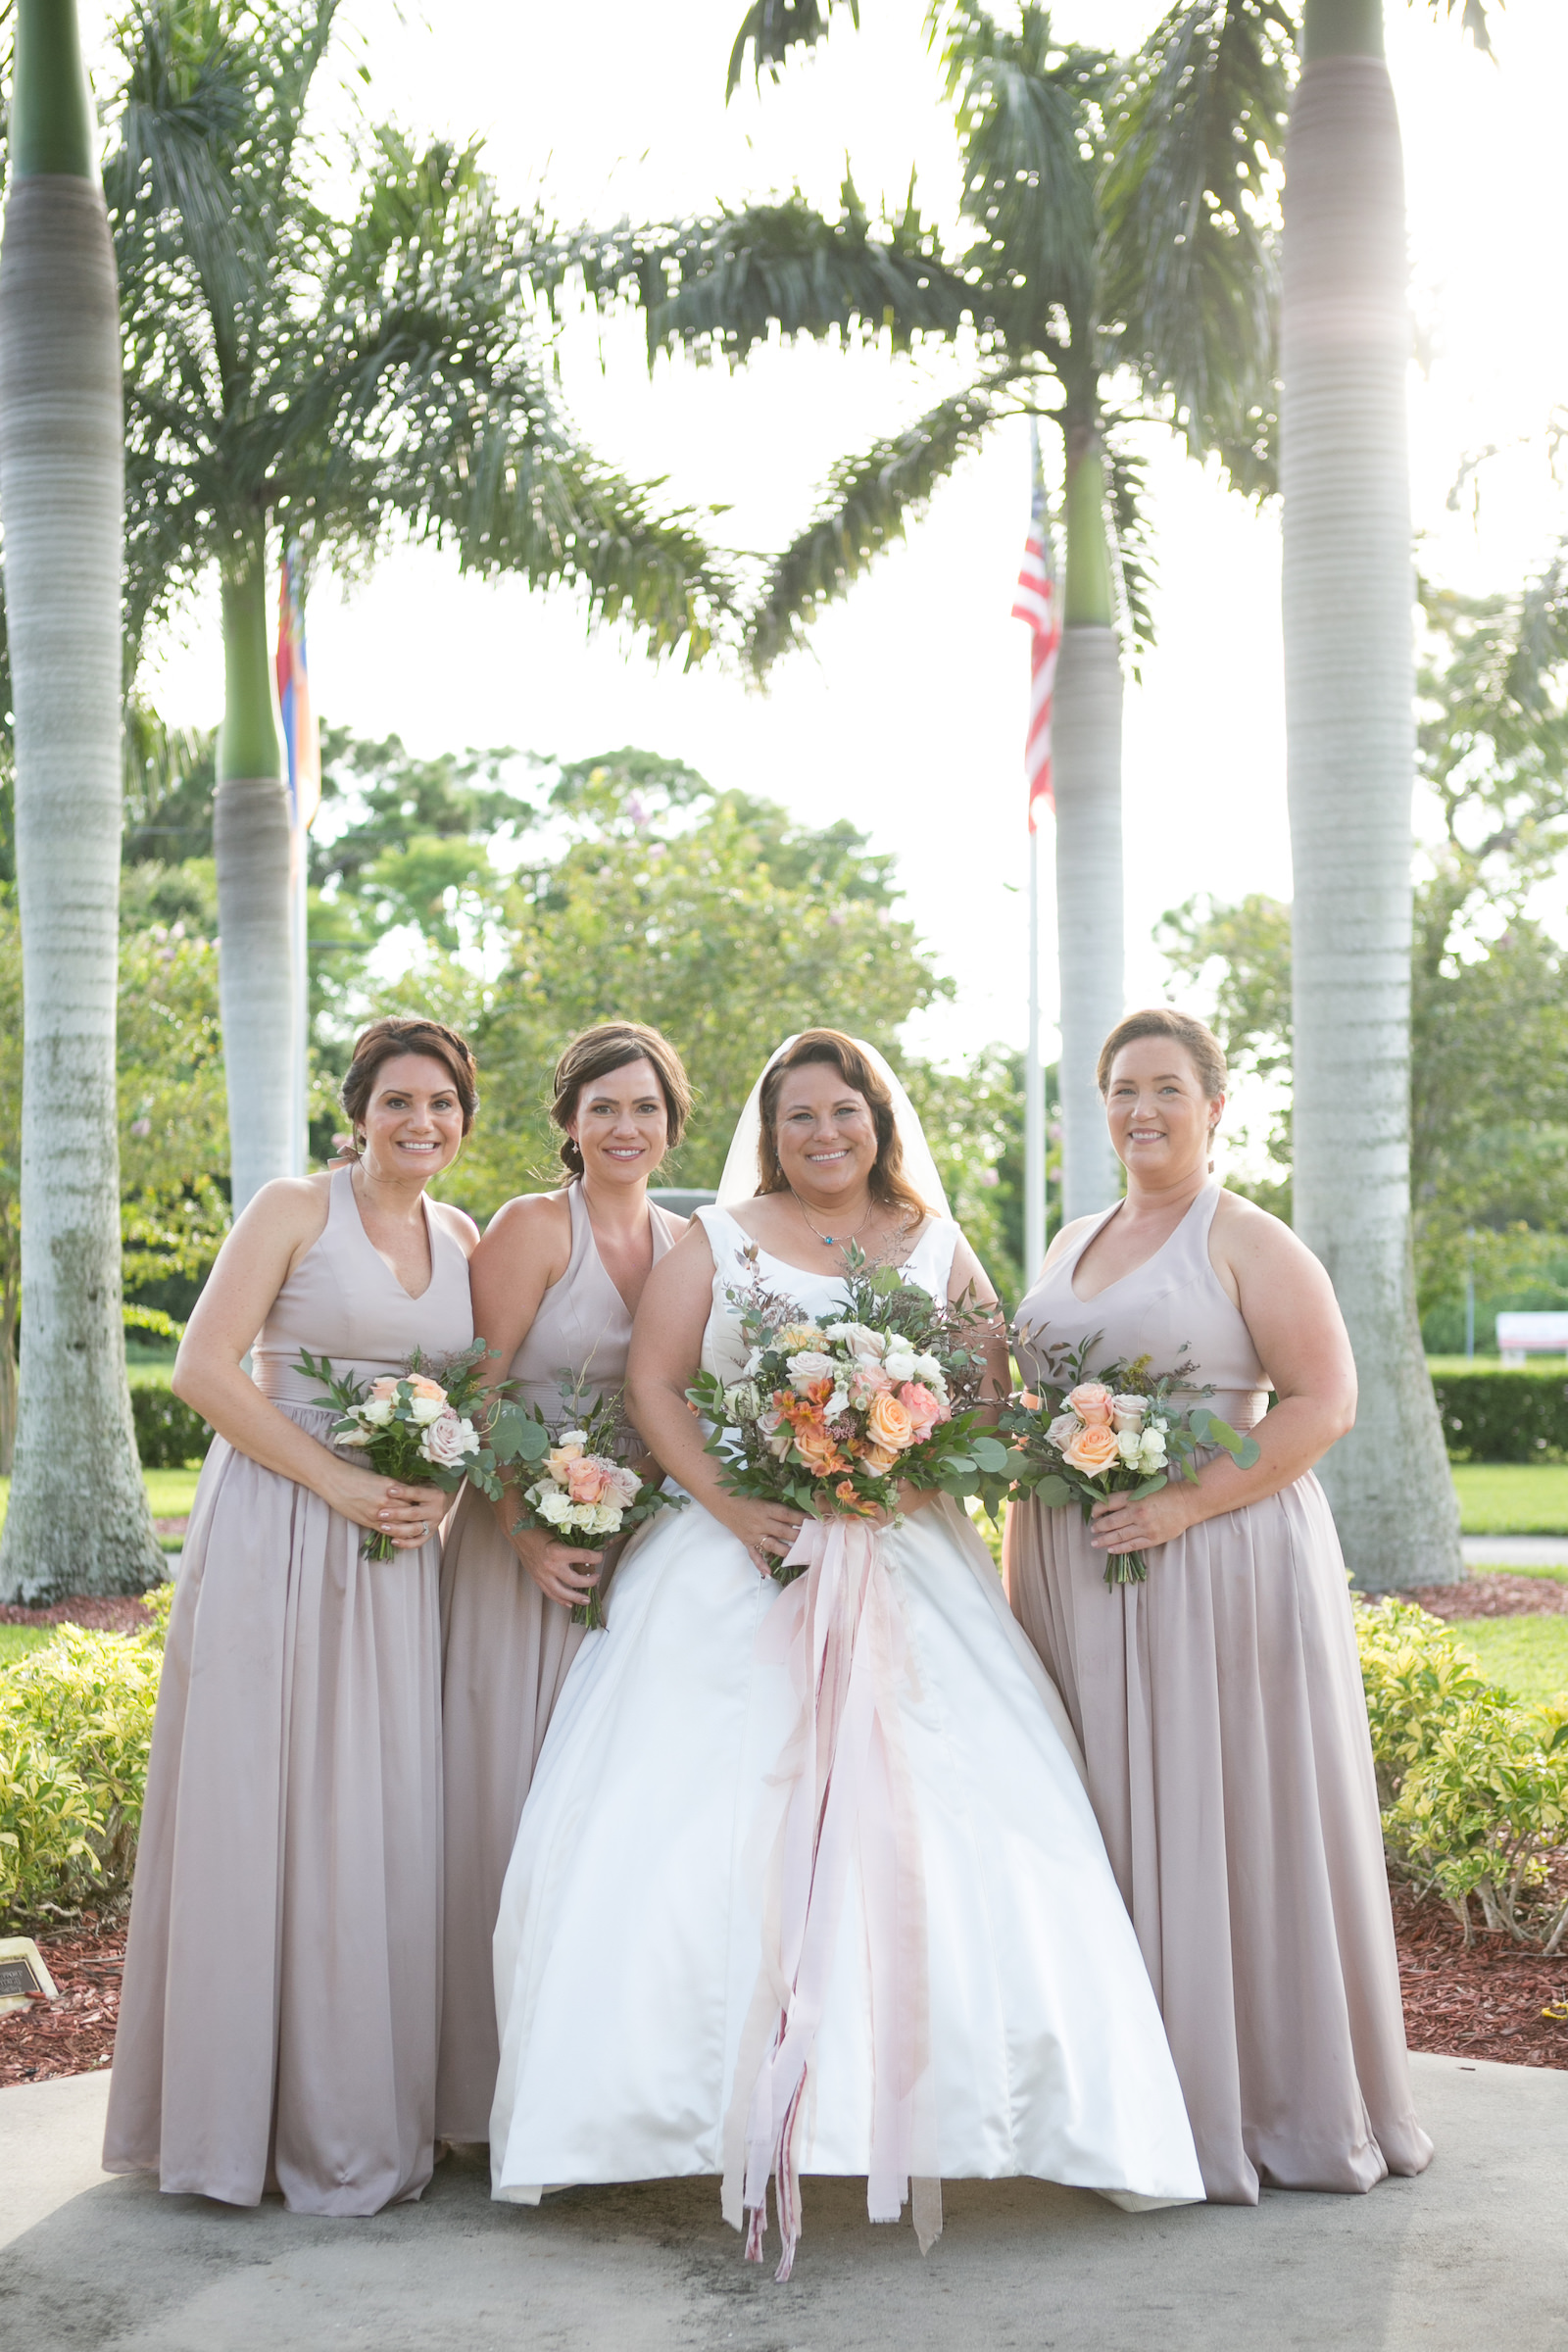 Tampa Bride with Bridesmaids in Matching Biscotti Dresses Holding Greenery and Spring Color Floral Bouquets | Wedding Photographer Carrie Wildes Photography | Wedding Dress Shop Truly Forever Bridal | Wedding Hair and Makeup Michele Renee the Studio